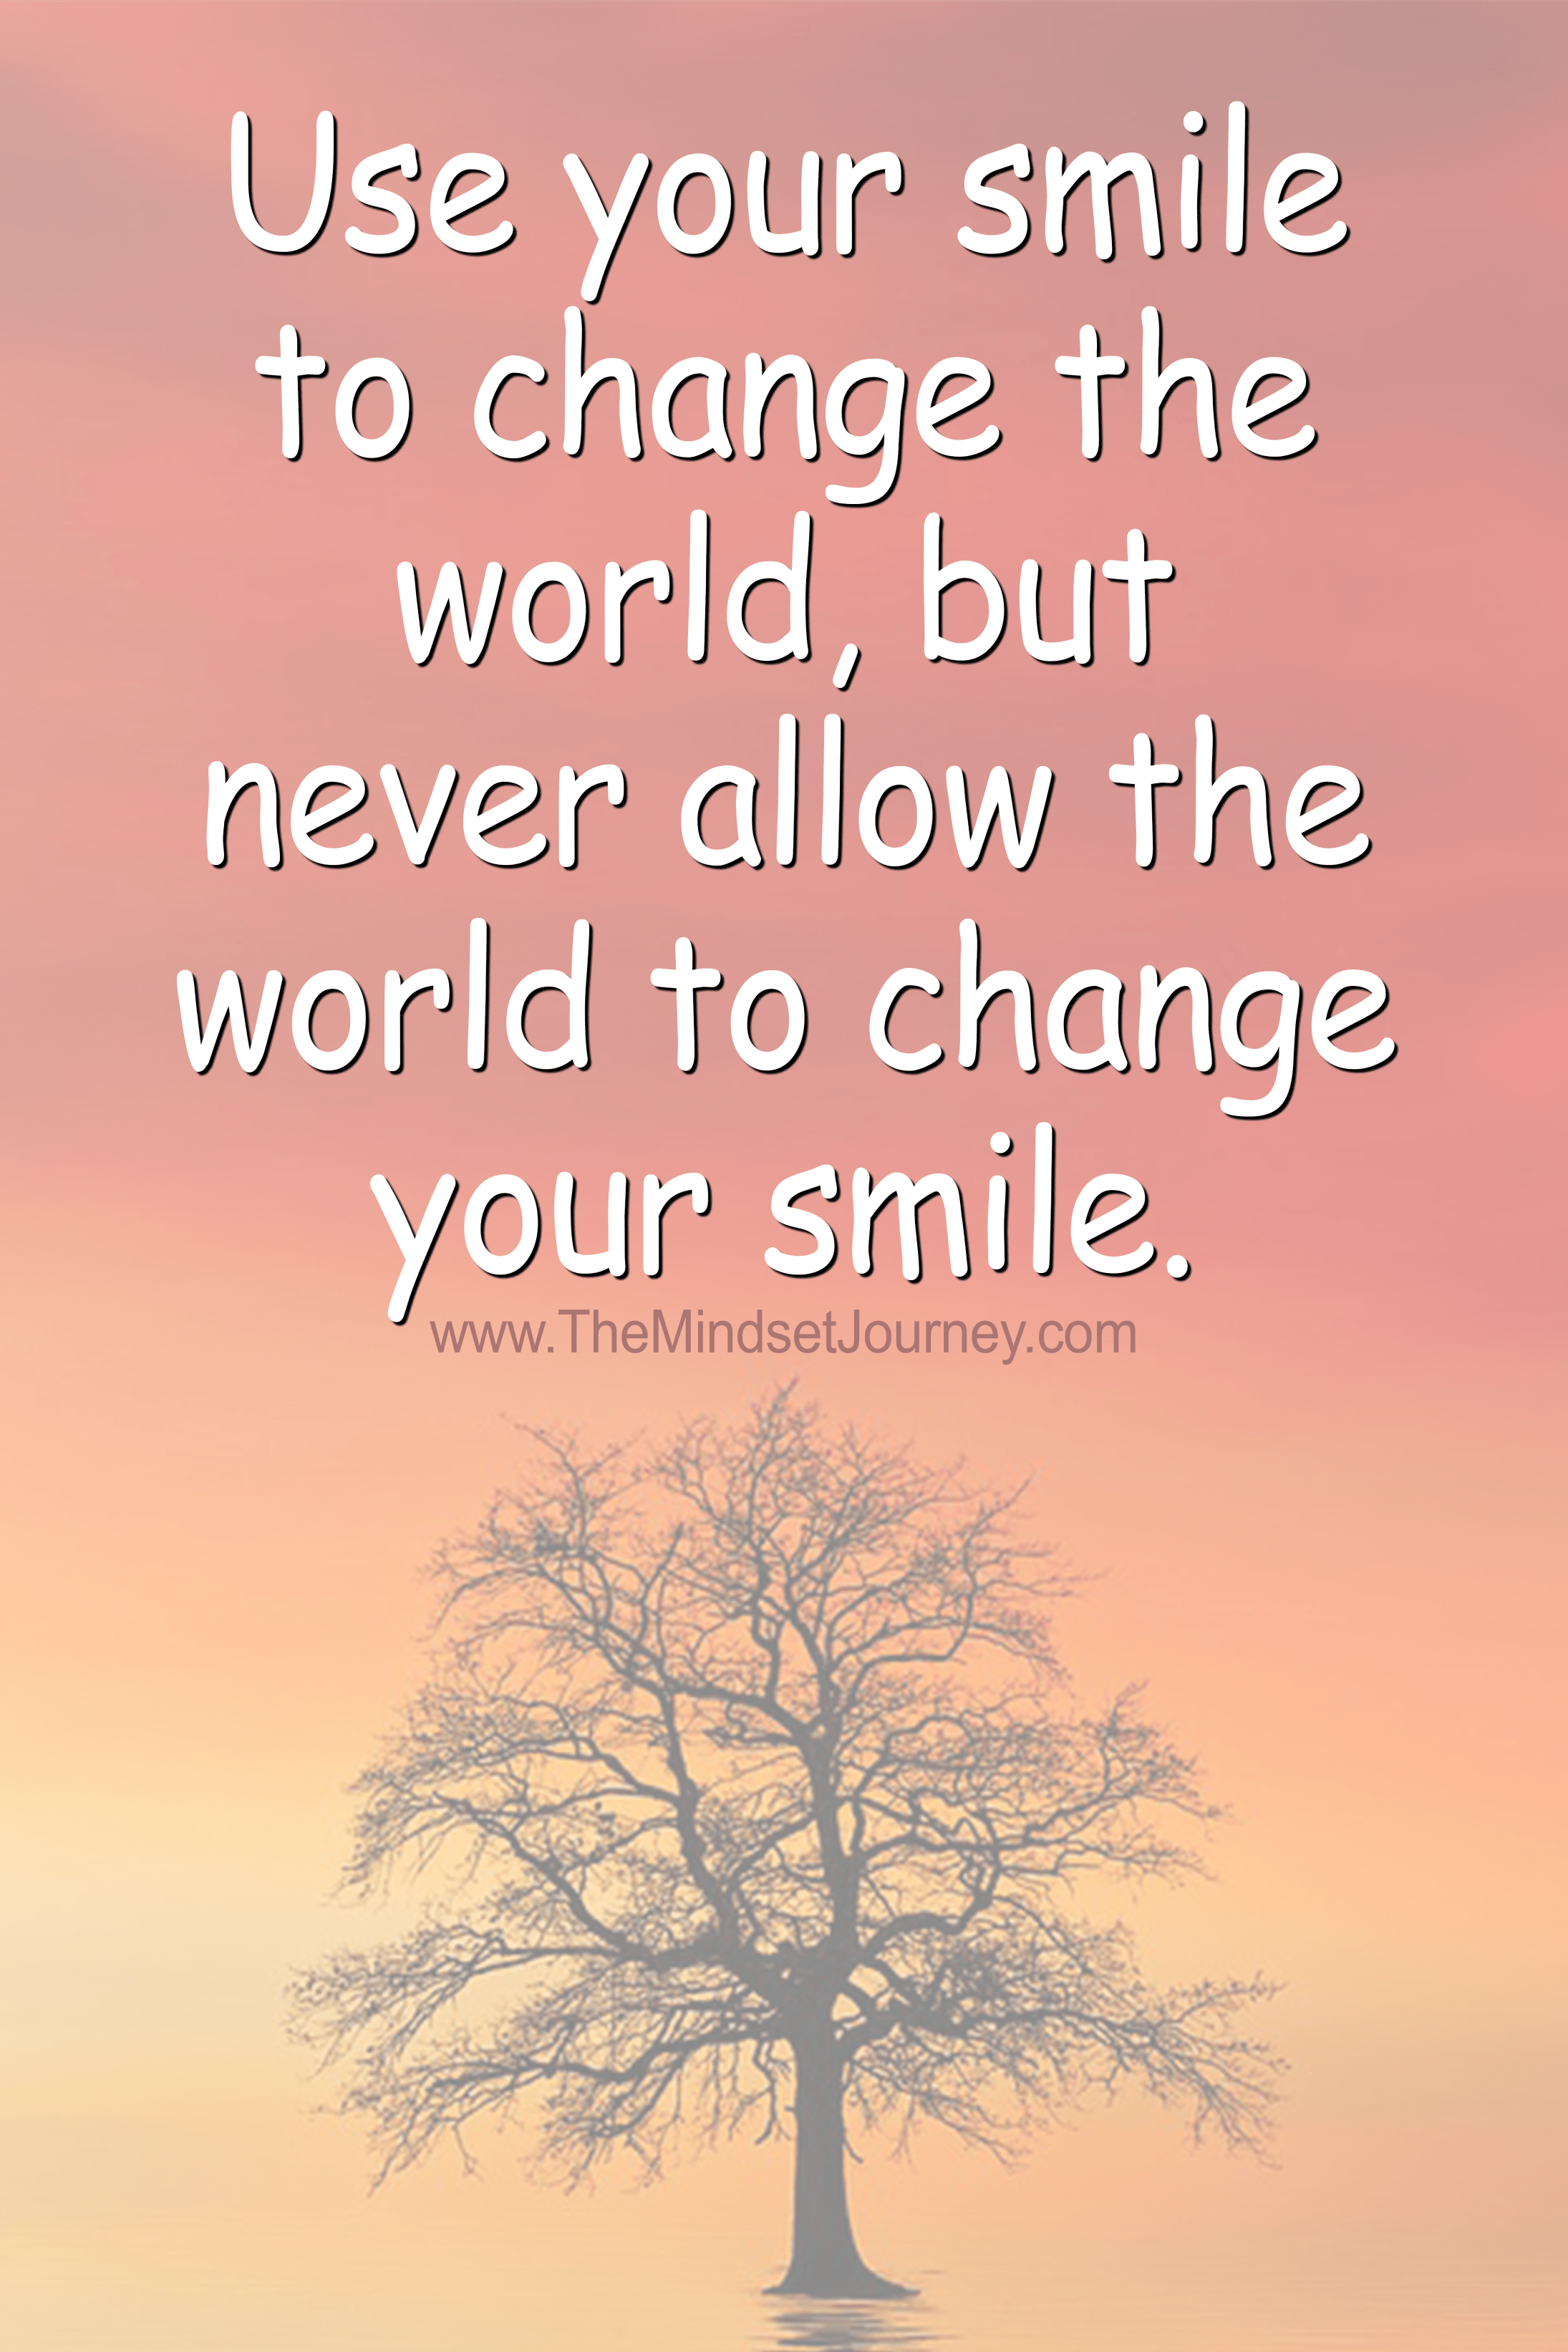 Use Your Smile To Change The World But Never Allow The World To Change Your Smile The Mindset Journey Your Smile Mindset Quotes Change The World